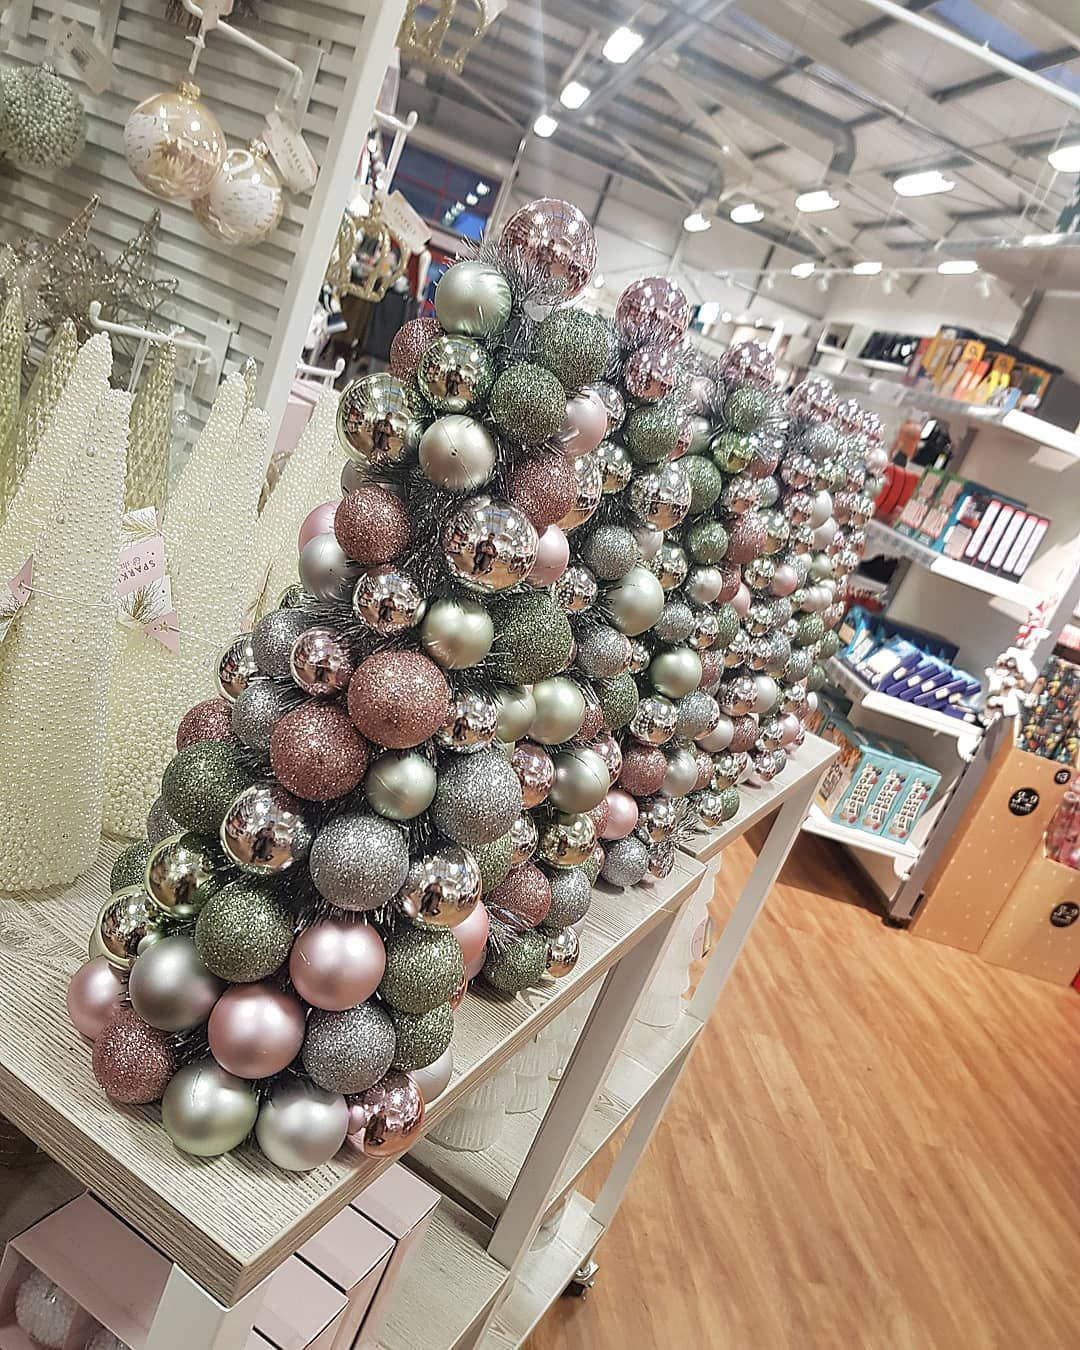 All This Christmas Stuff In Matalan Is Making Me Cray Cray Shopmatalan Christmasd Christmas Wreaths Holiday Decor Christmas Decorations